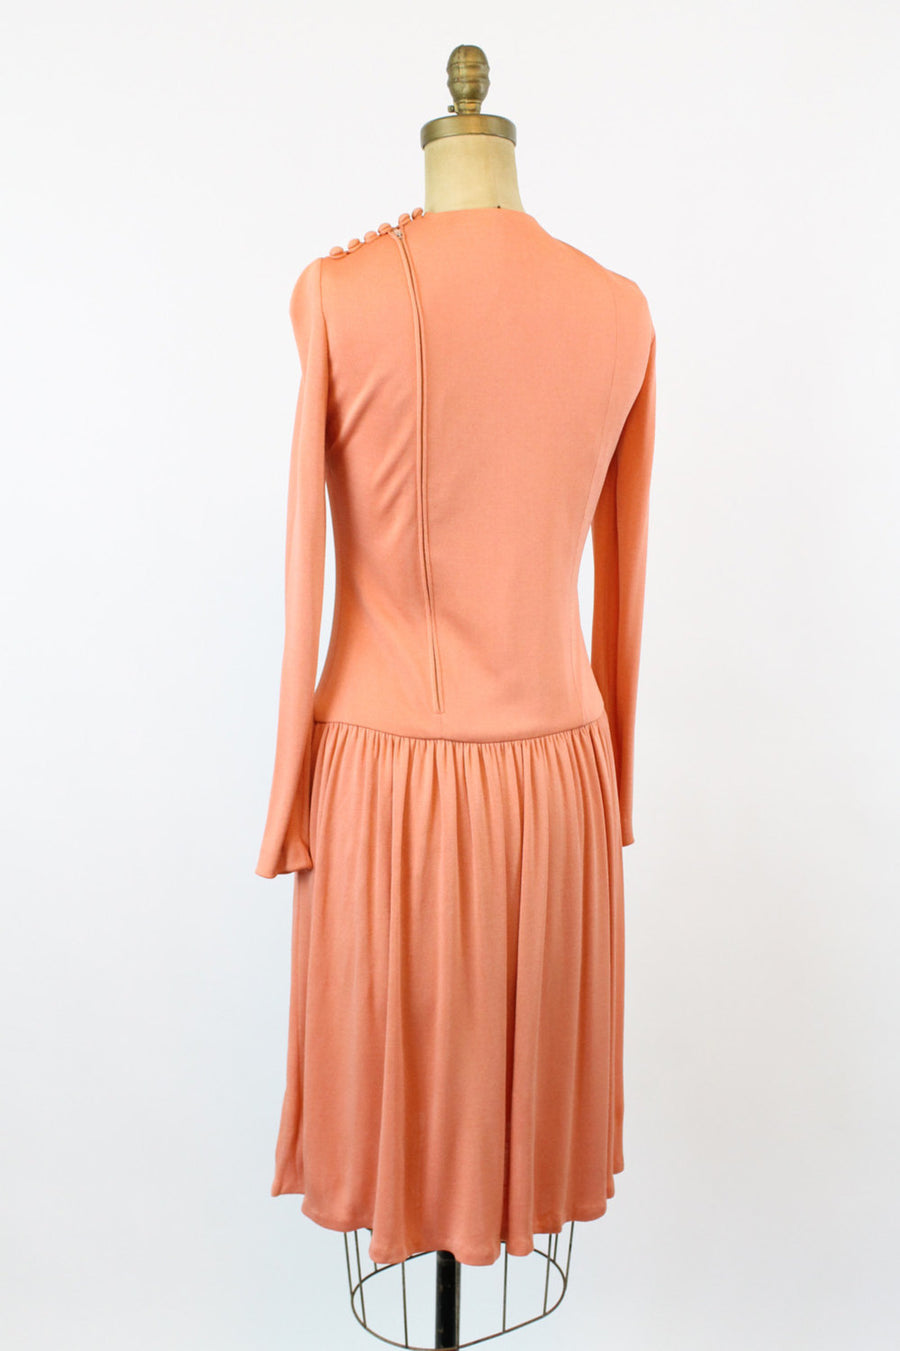 1960s Geoffrey Beene jersey dress small | vintage designer dress | new in